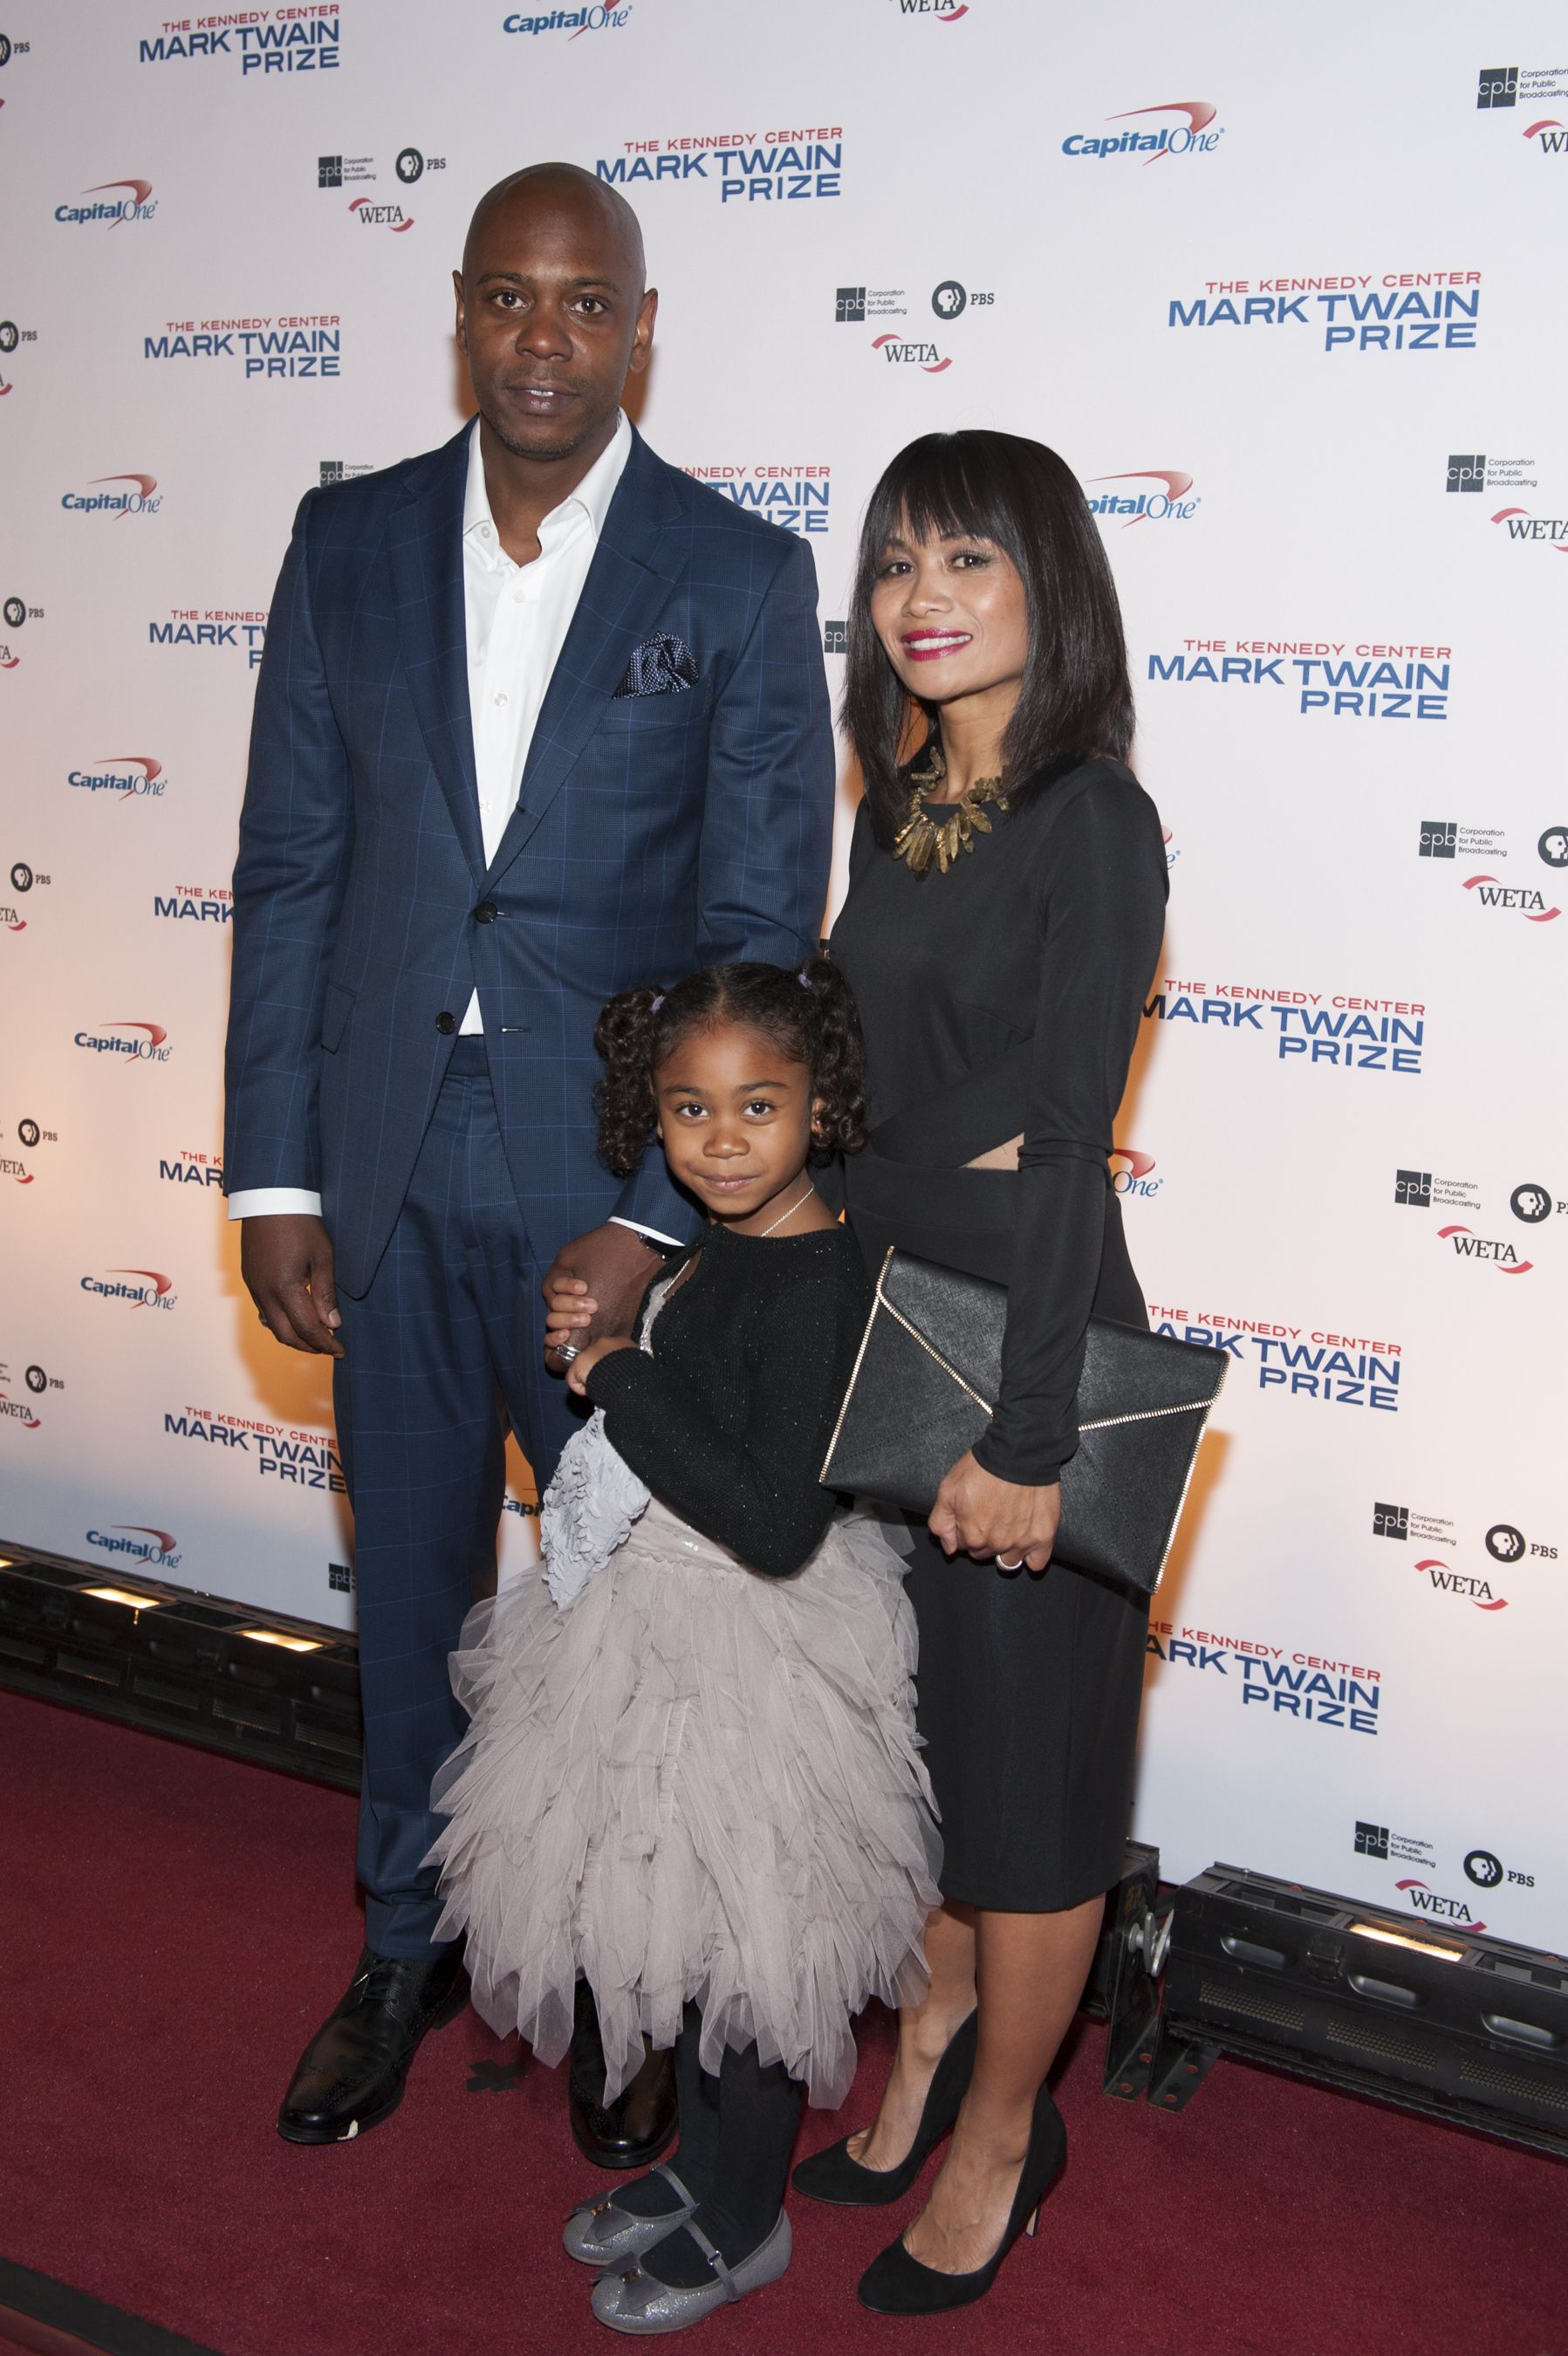 dave chappelle with wife elaine and daughter sonal photo margot schulman jpg 1797 2700 black love couples black art pictures interracial love dave chappelle with wife elaine and